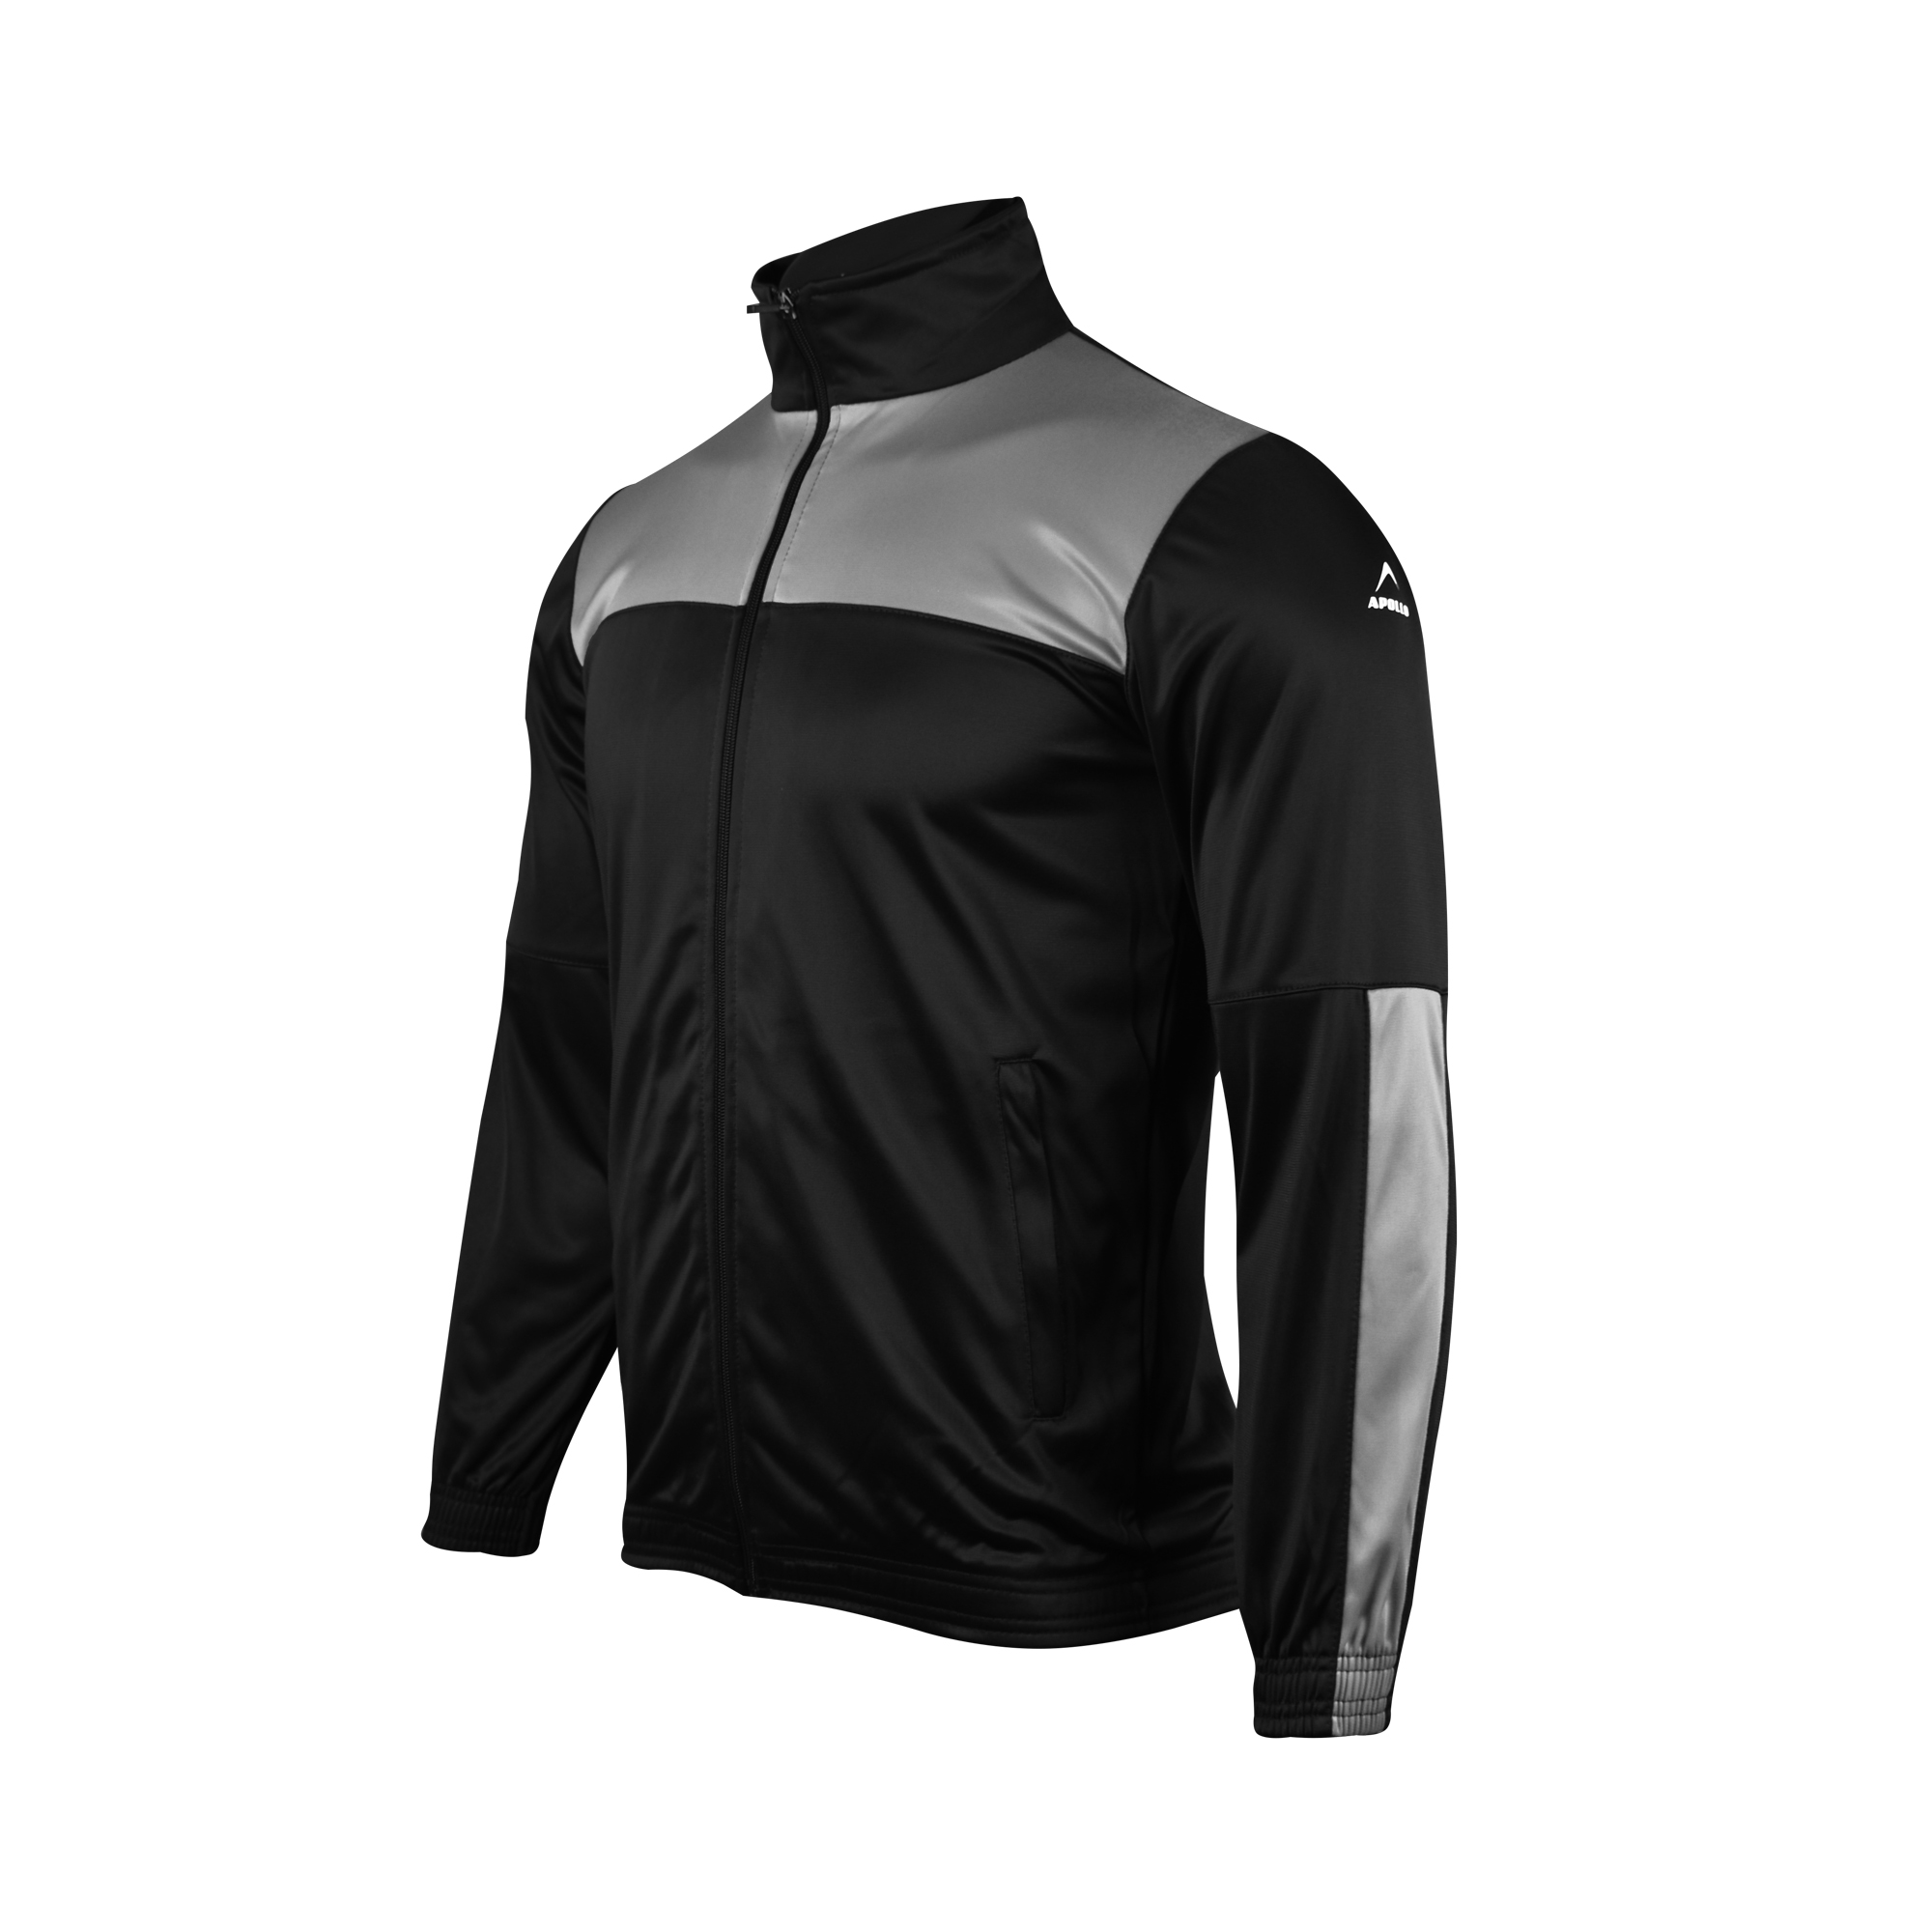 MENS SPORTS CASUAL RUNNING TRAINING TRICOT TRINDA UPPER JACKET WINTER 19 APOLLO 93M251 - JET BLACK